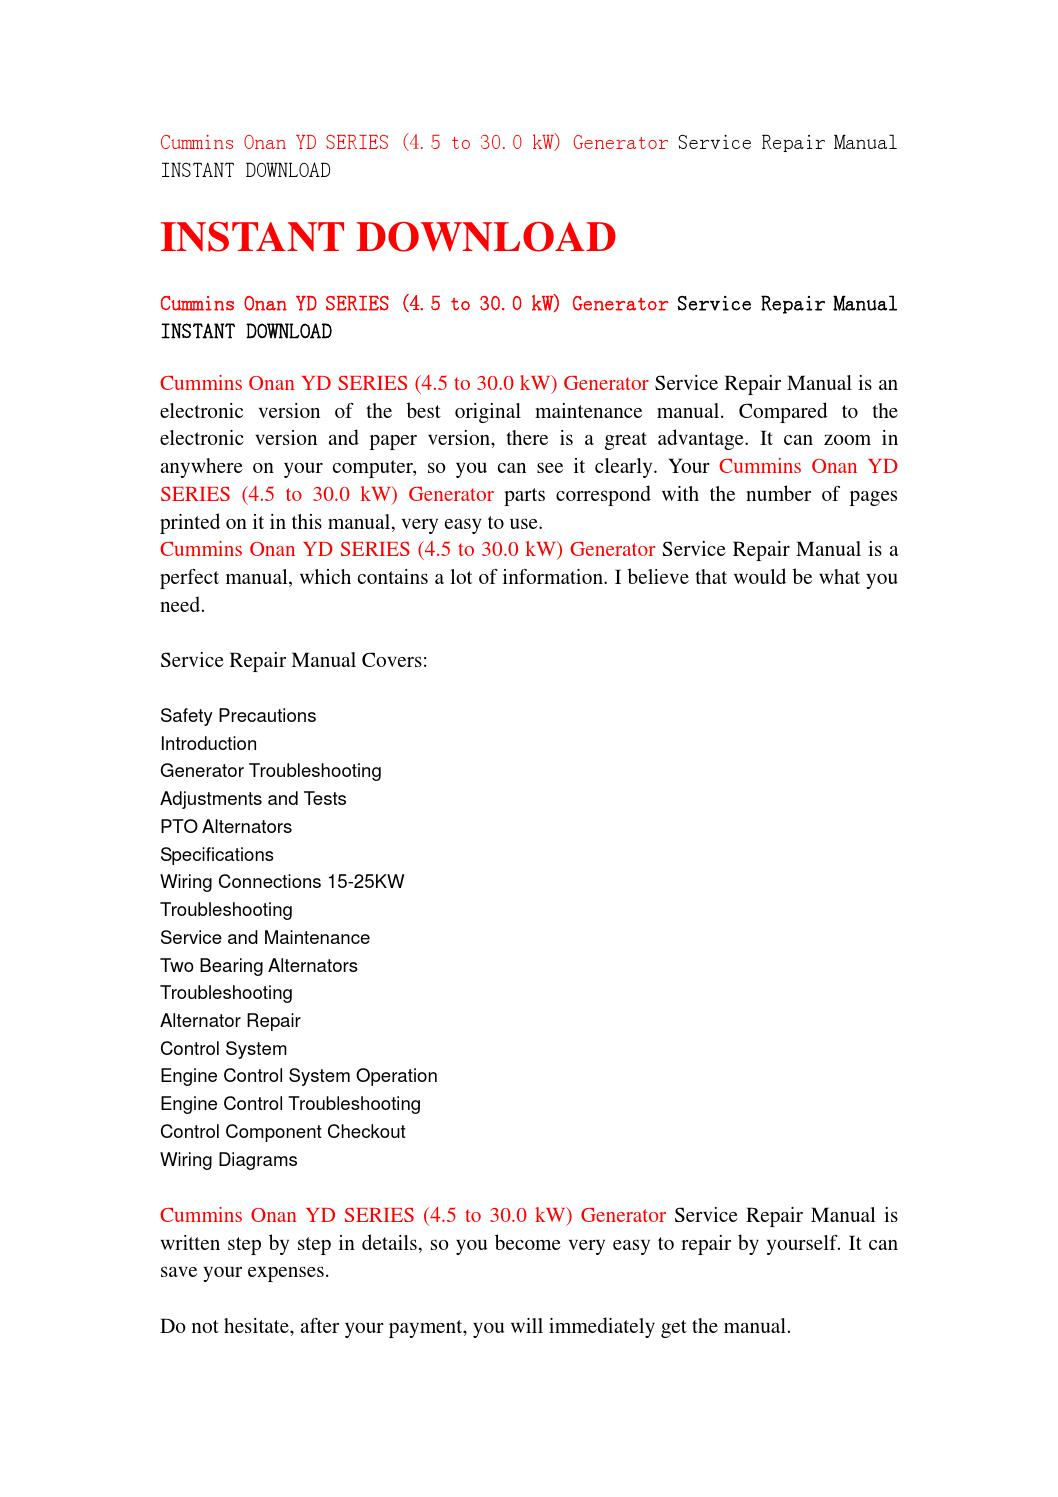 Cummins Onan Yd Series  4 5 To 30 0 Kw  Generator Service Repair Manual Instant Download By